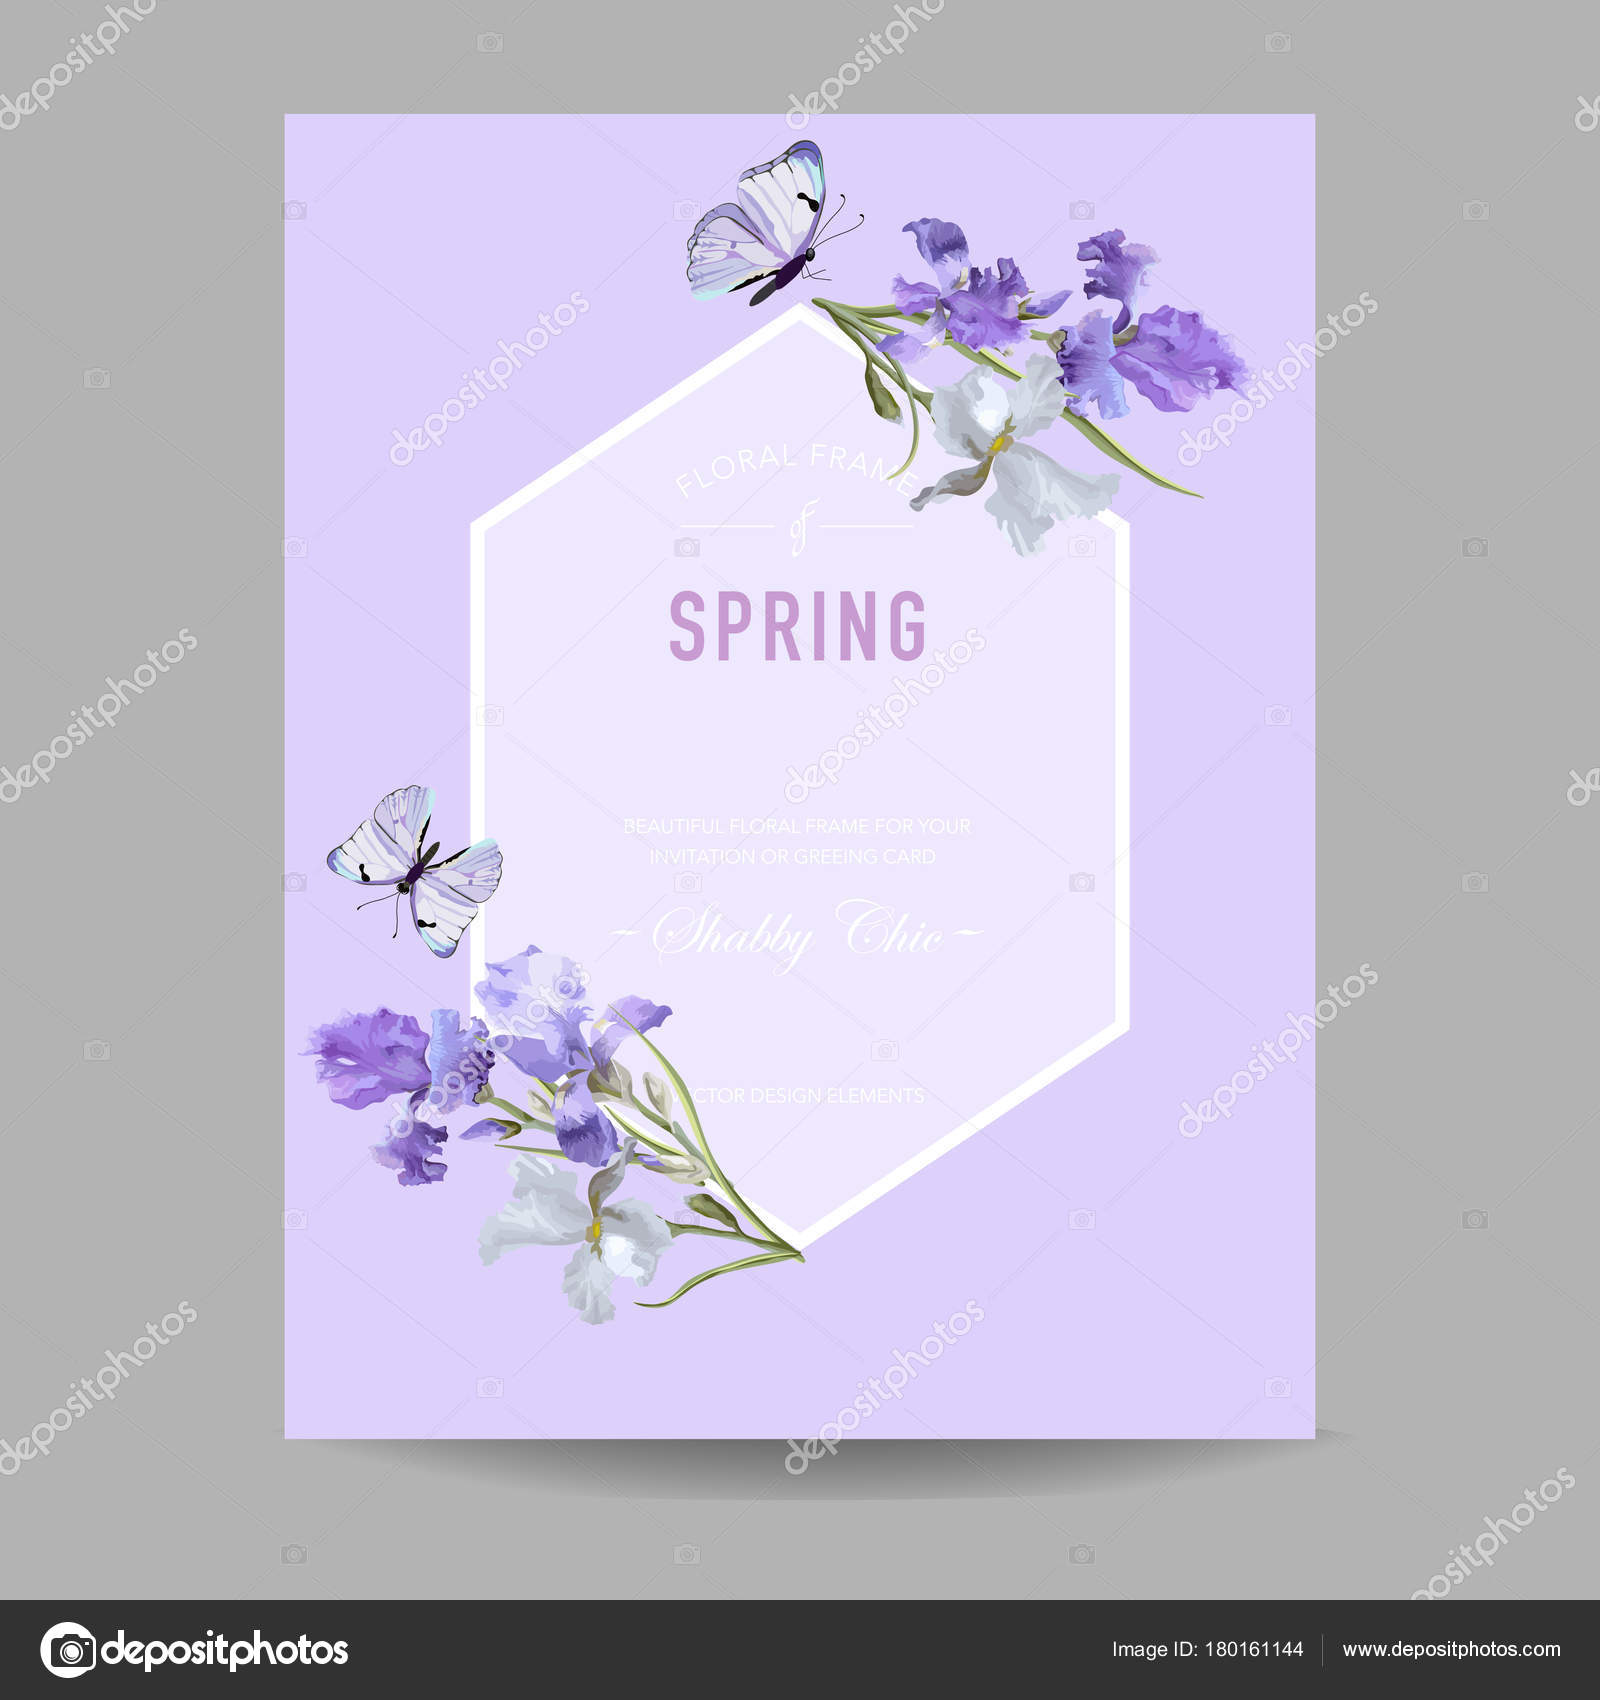 Floral Bloom Spring Frame With Purple Iris Flowers Invitation